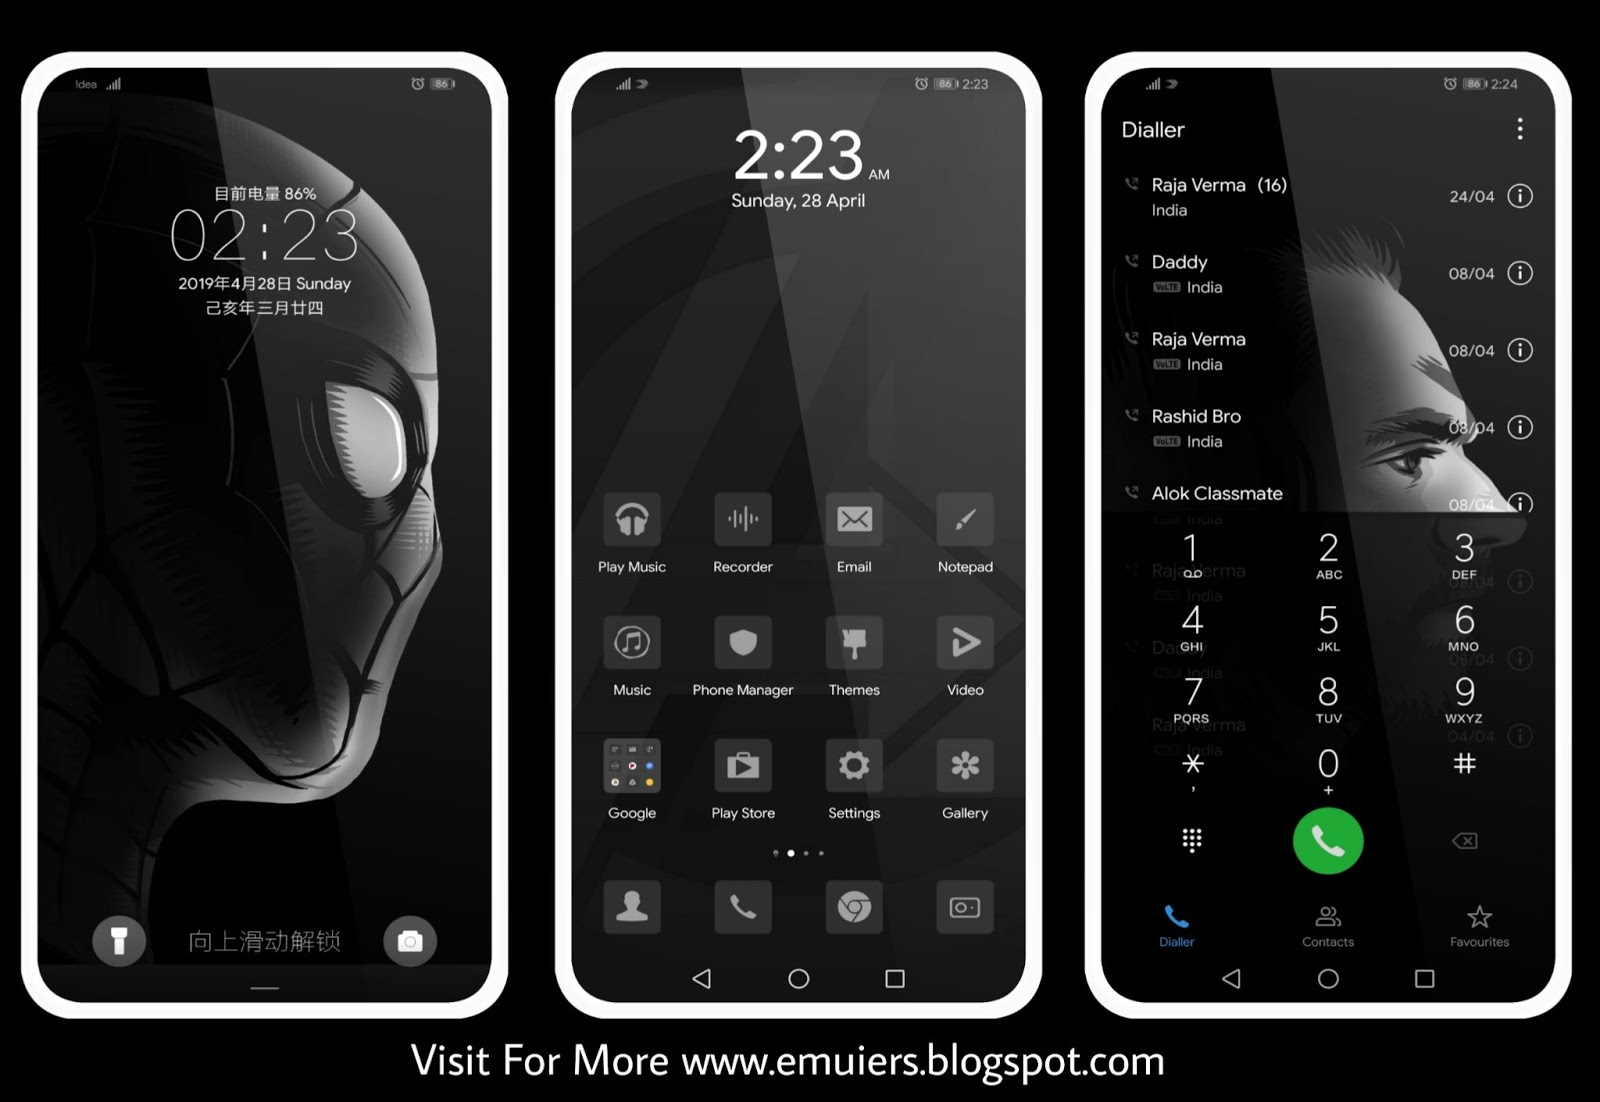 Avengers: Endgame Edition EMUI Theme Download For Huawei & HONOR